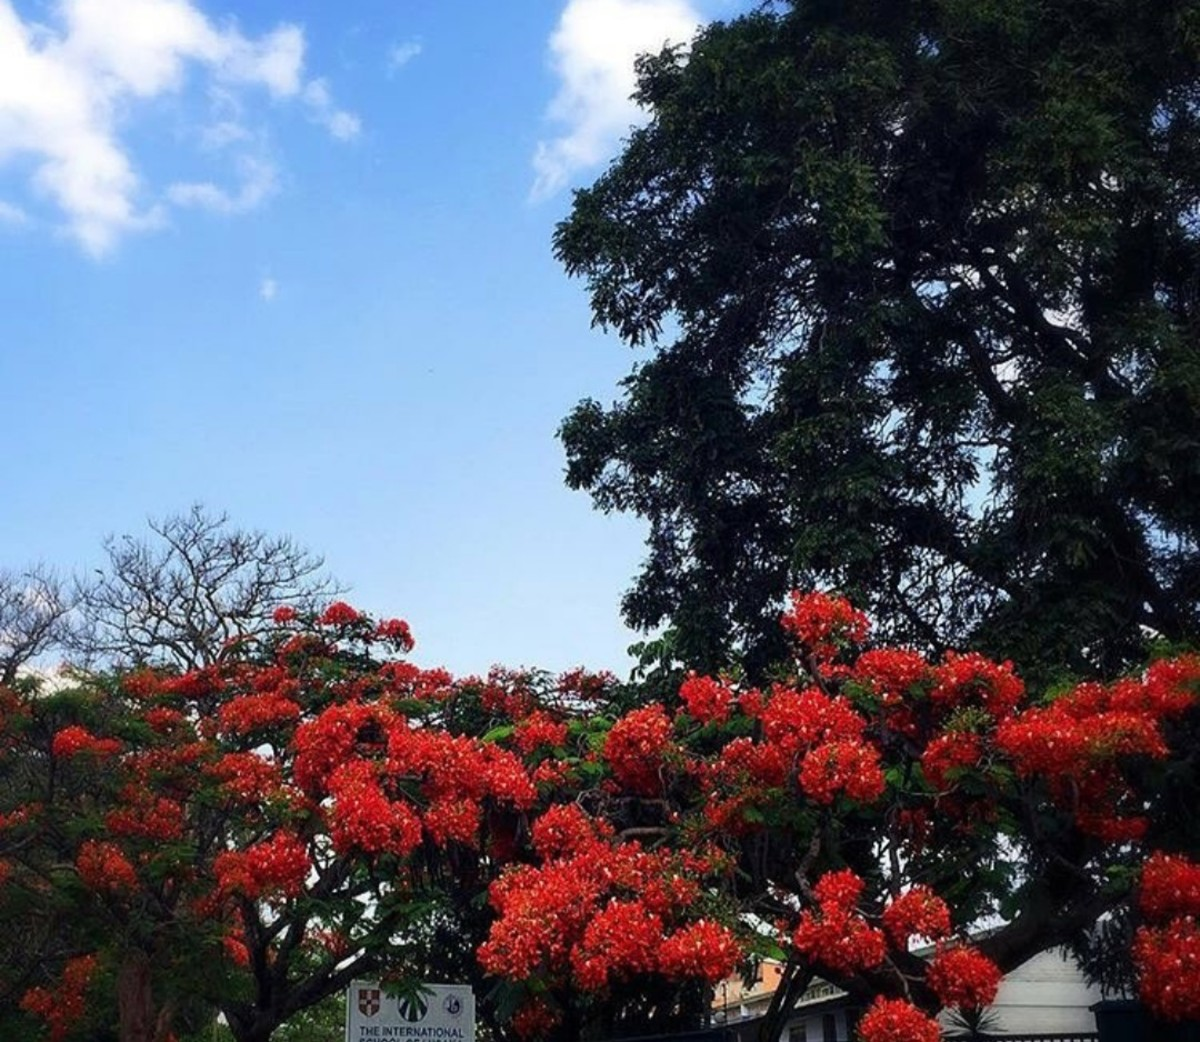 Beautiful flowers in Flame tree | Archana Das